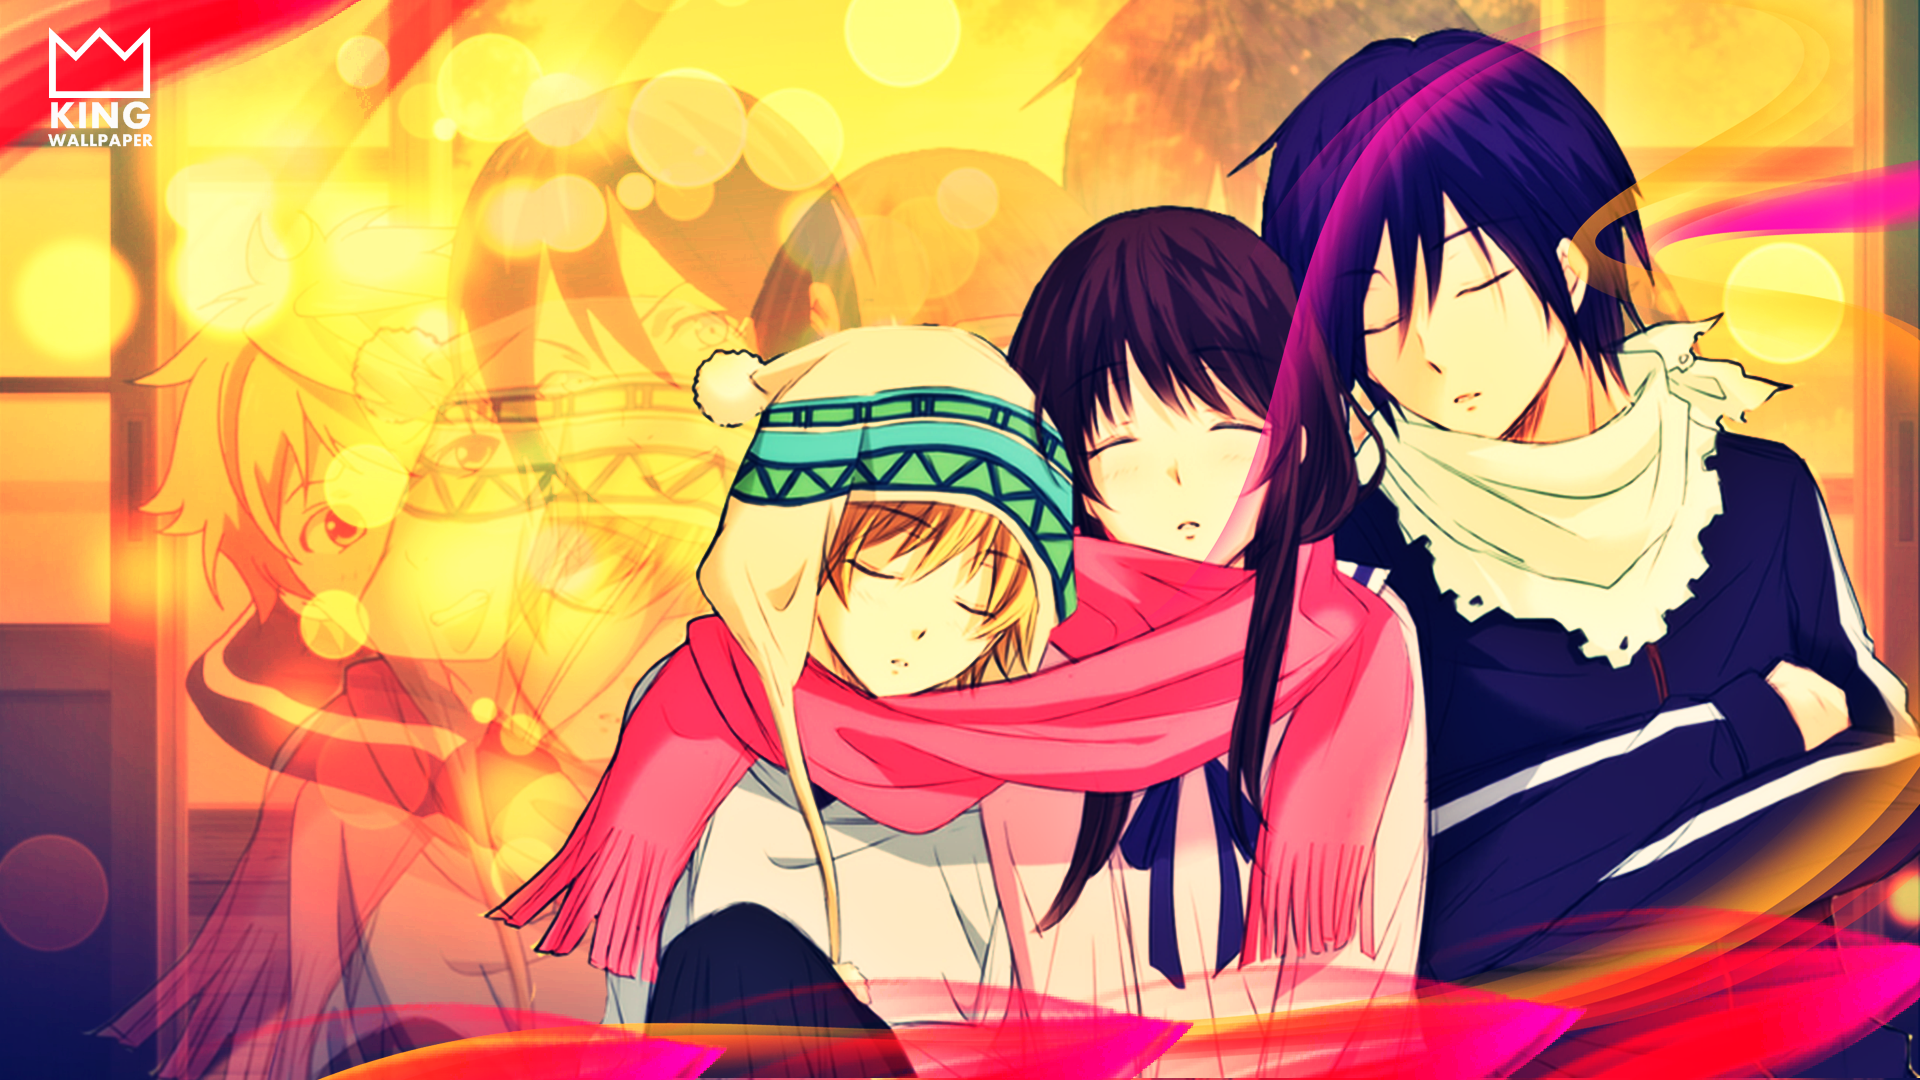 imagen noragami wallpaper by - photo #18